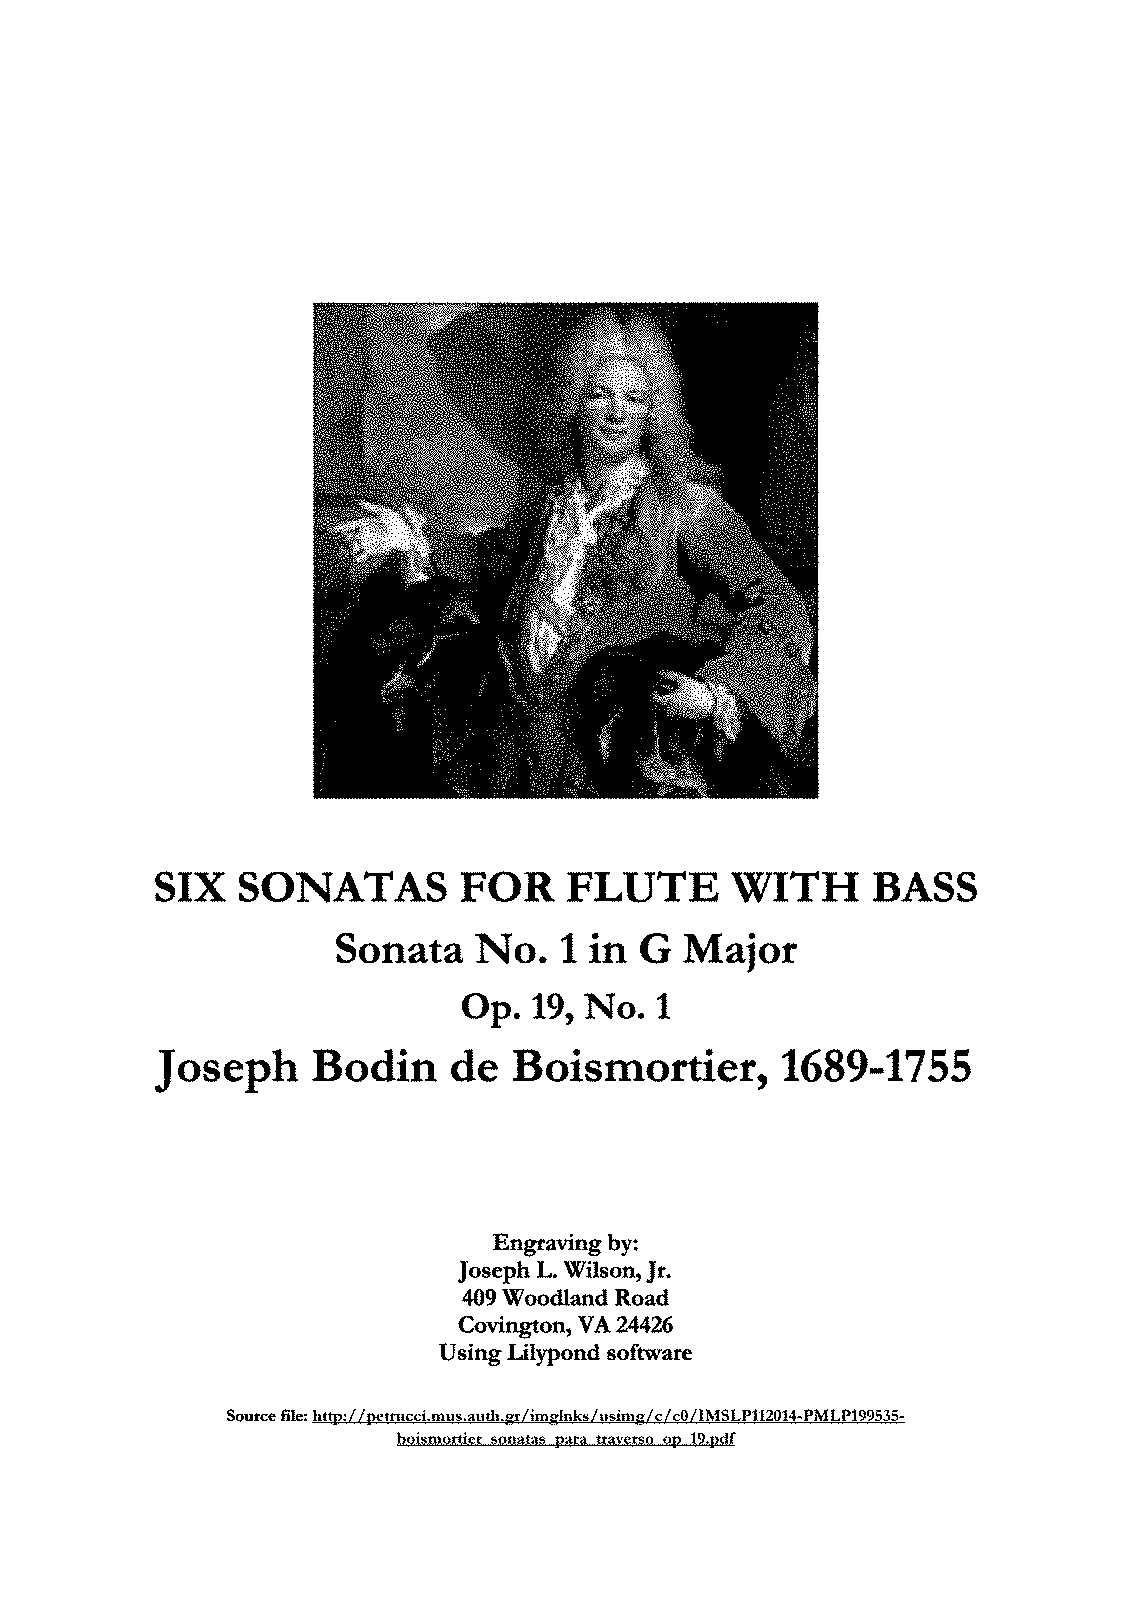 PMLP199535-Boismortier Six Sonatas for Flute with Bass - Op 19 No 1.pdf